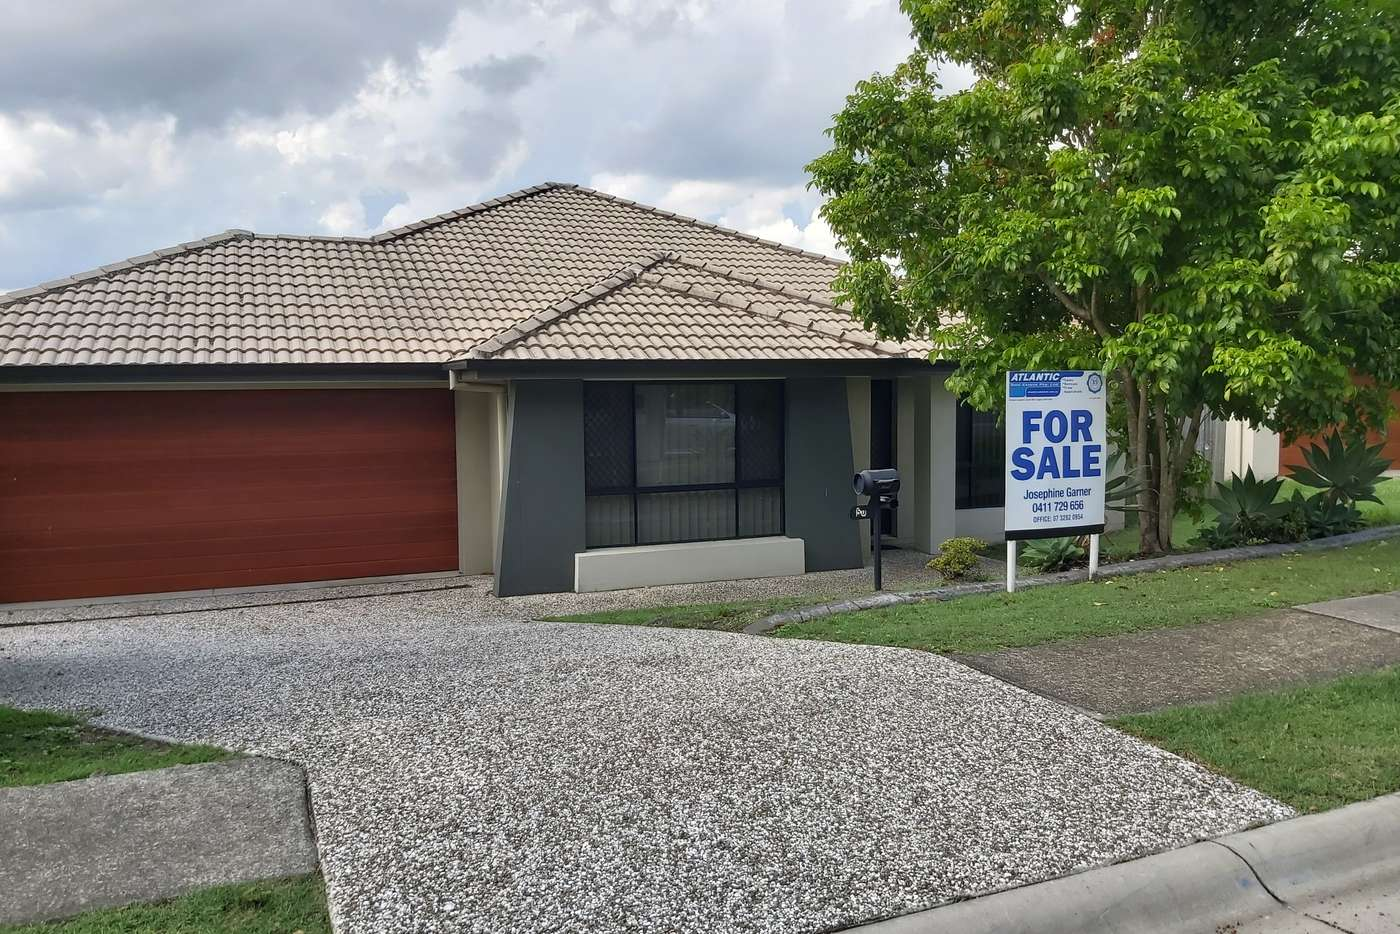 Main view of Homely house listing, 50 Argule Street, Hillcrest QLD 4118